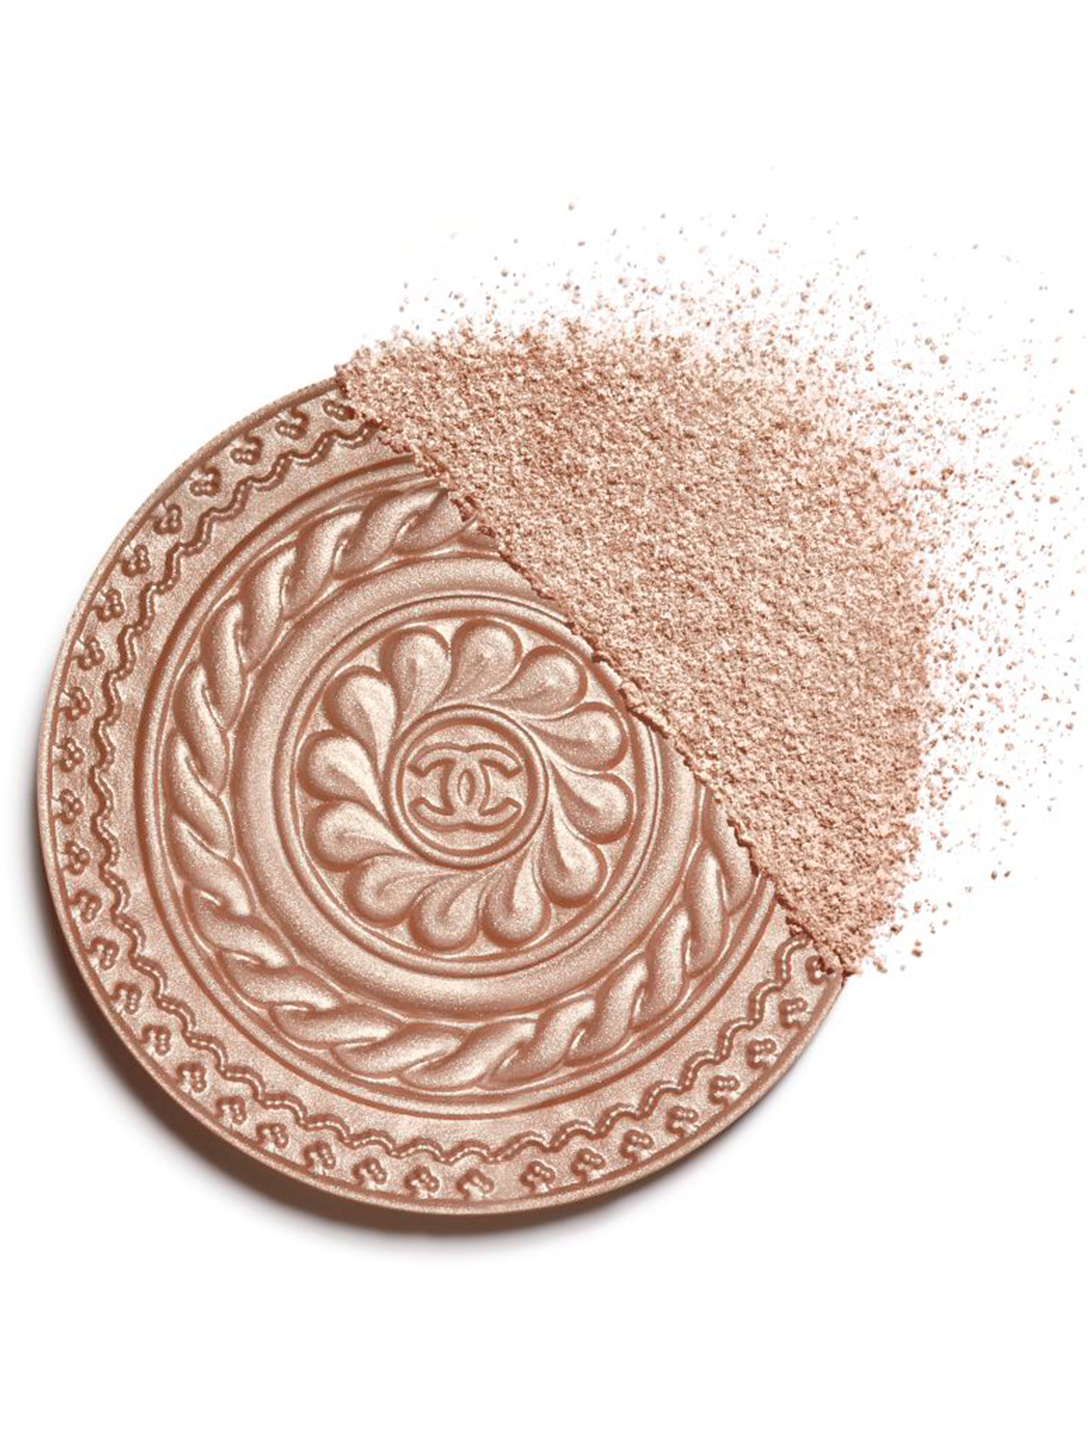 CHANEL Exclusive Creation - Limited Edition Illuminating Powder CHANEL